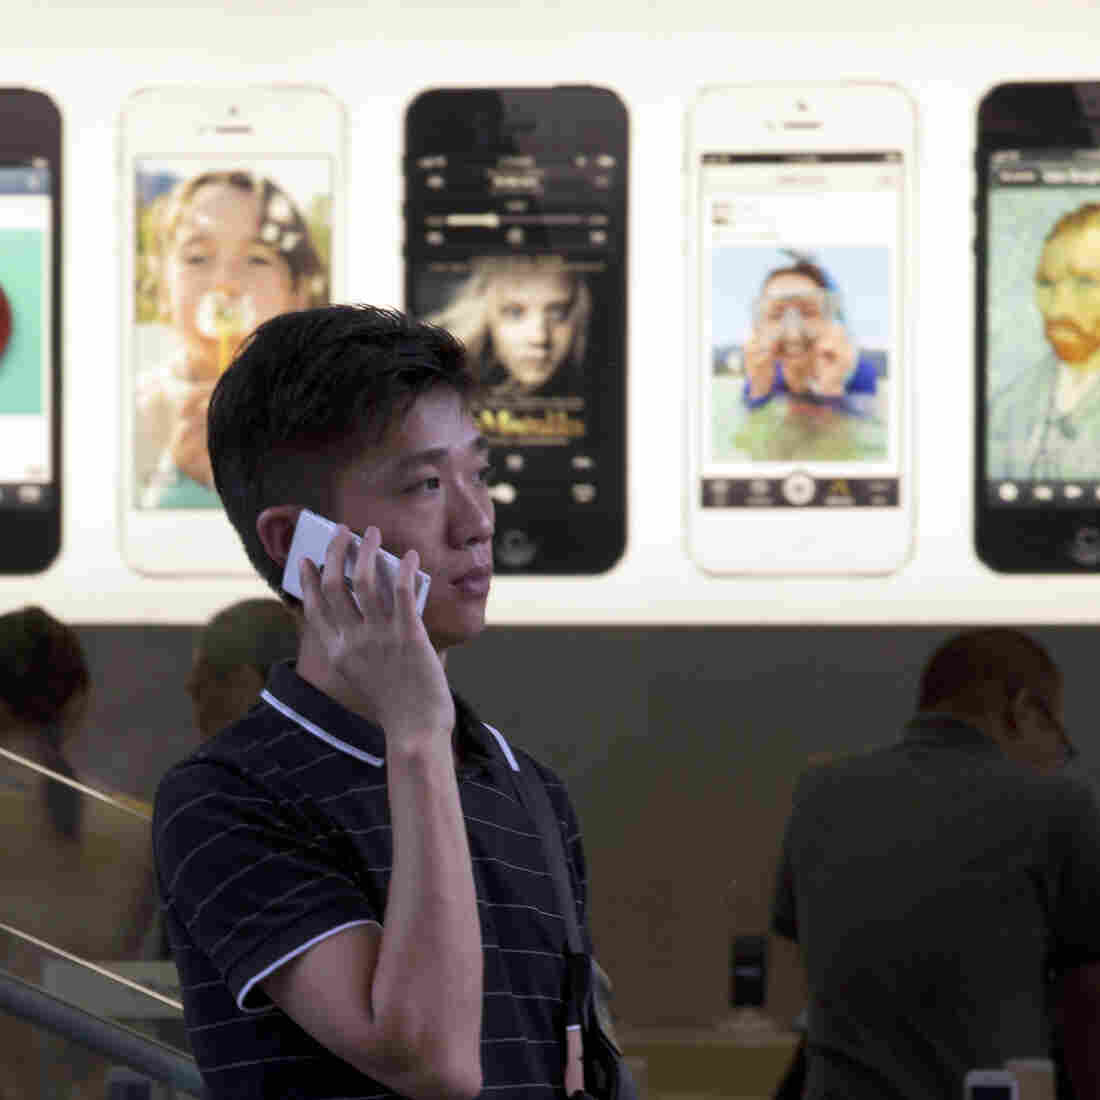 Dear Apple: Good Luck Against The Smartphone Black Market